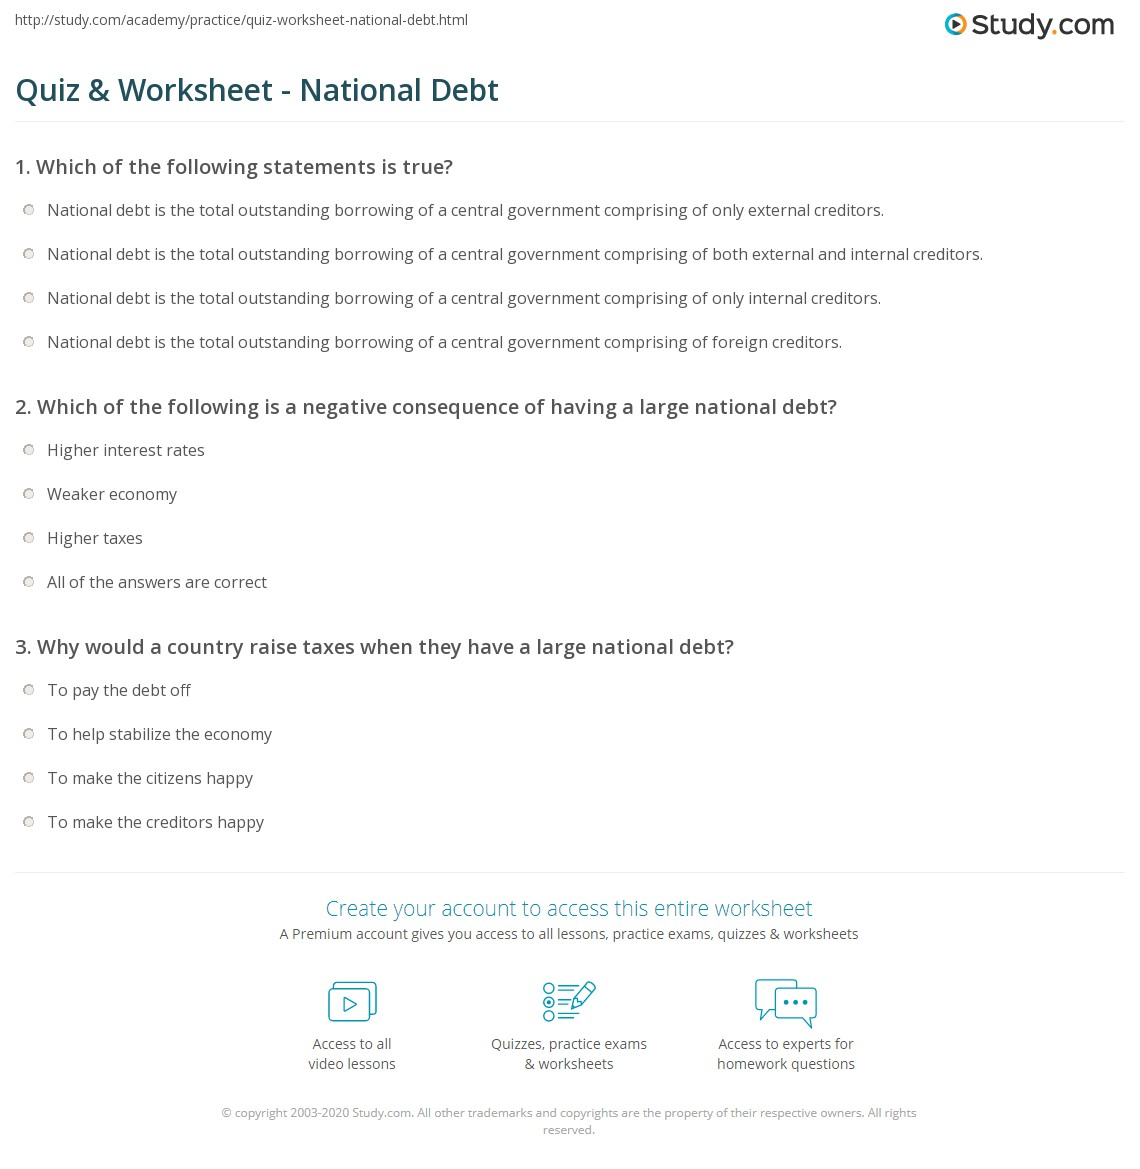 quiz & worksheet - national debt | study